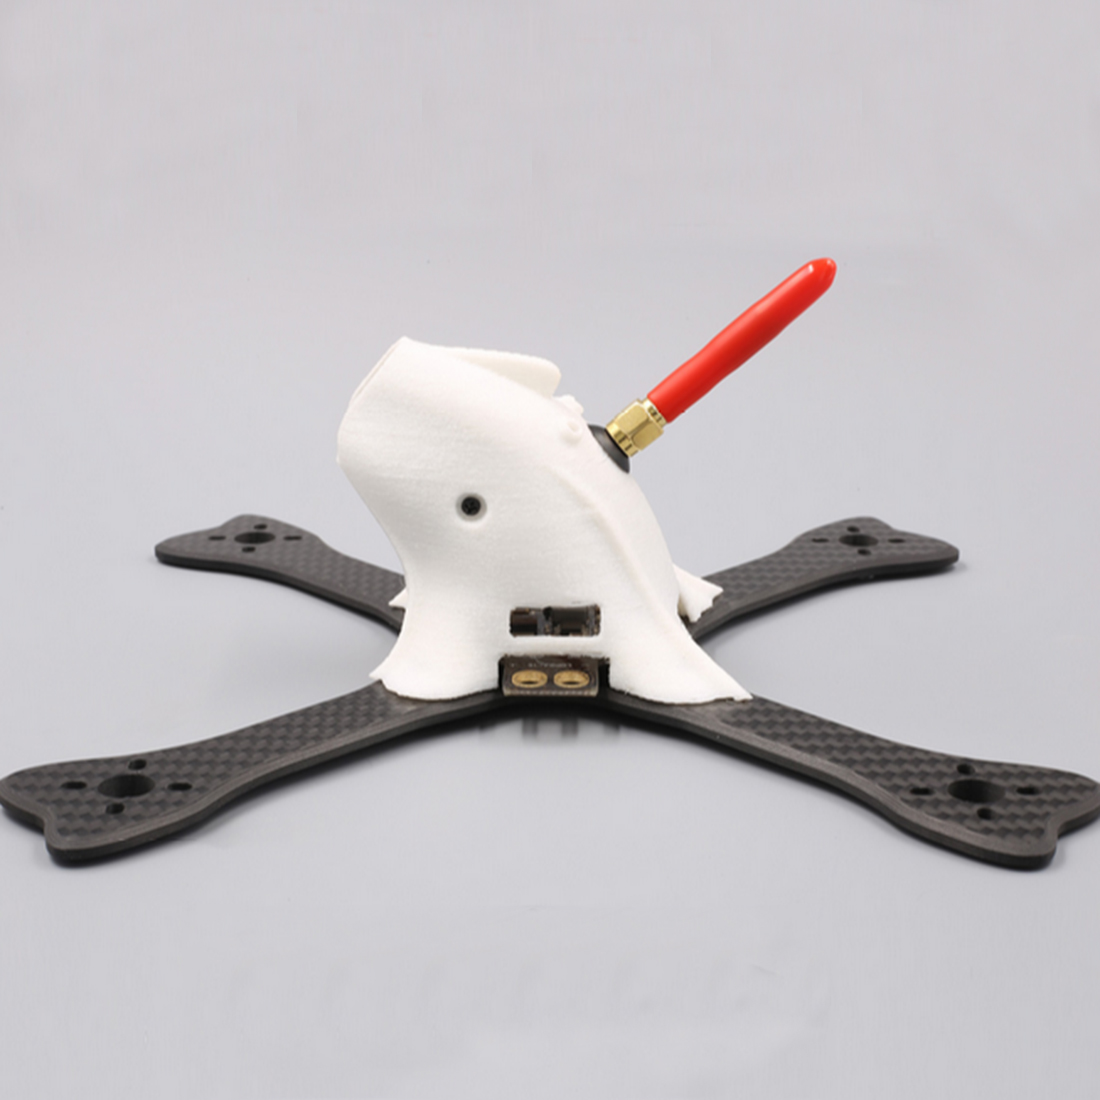 ФОТО FPV Carbon Fiber Frame Kit with 3D Printed Shell for Racing FPV RC Quadcopter Accessories